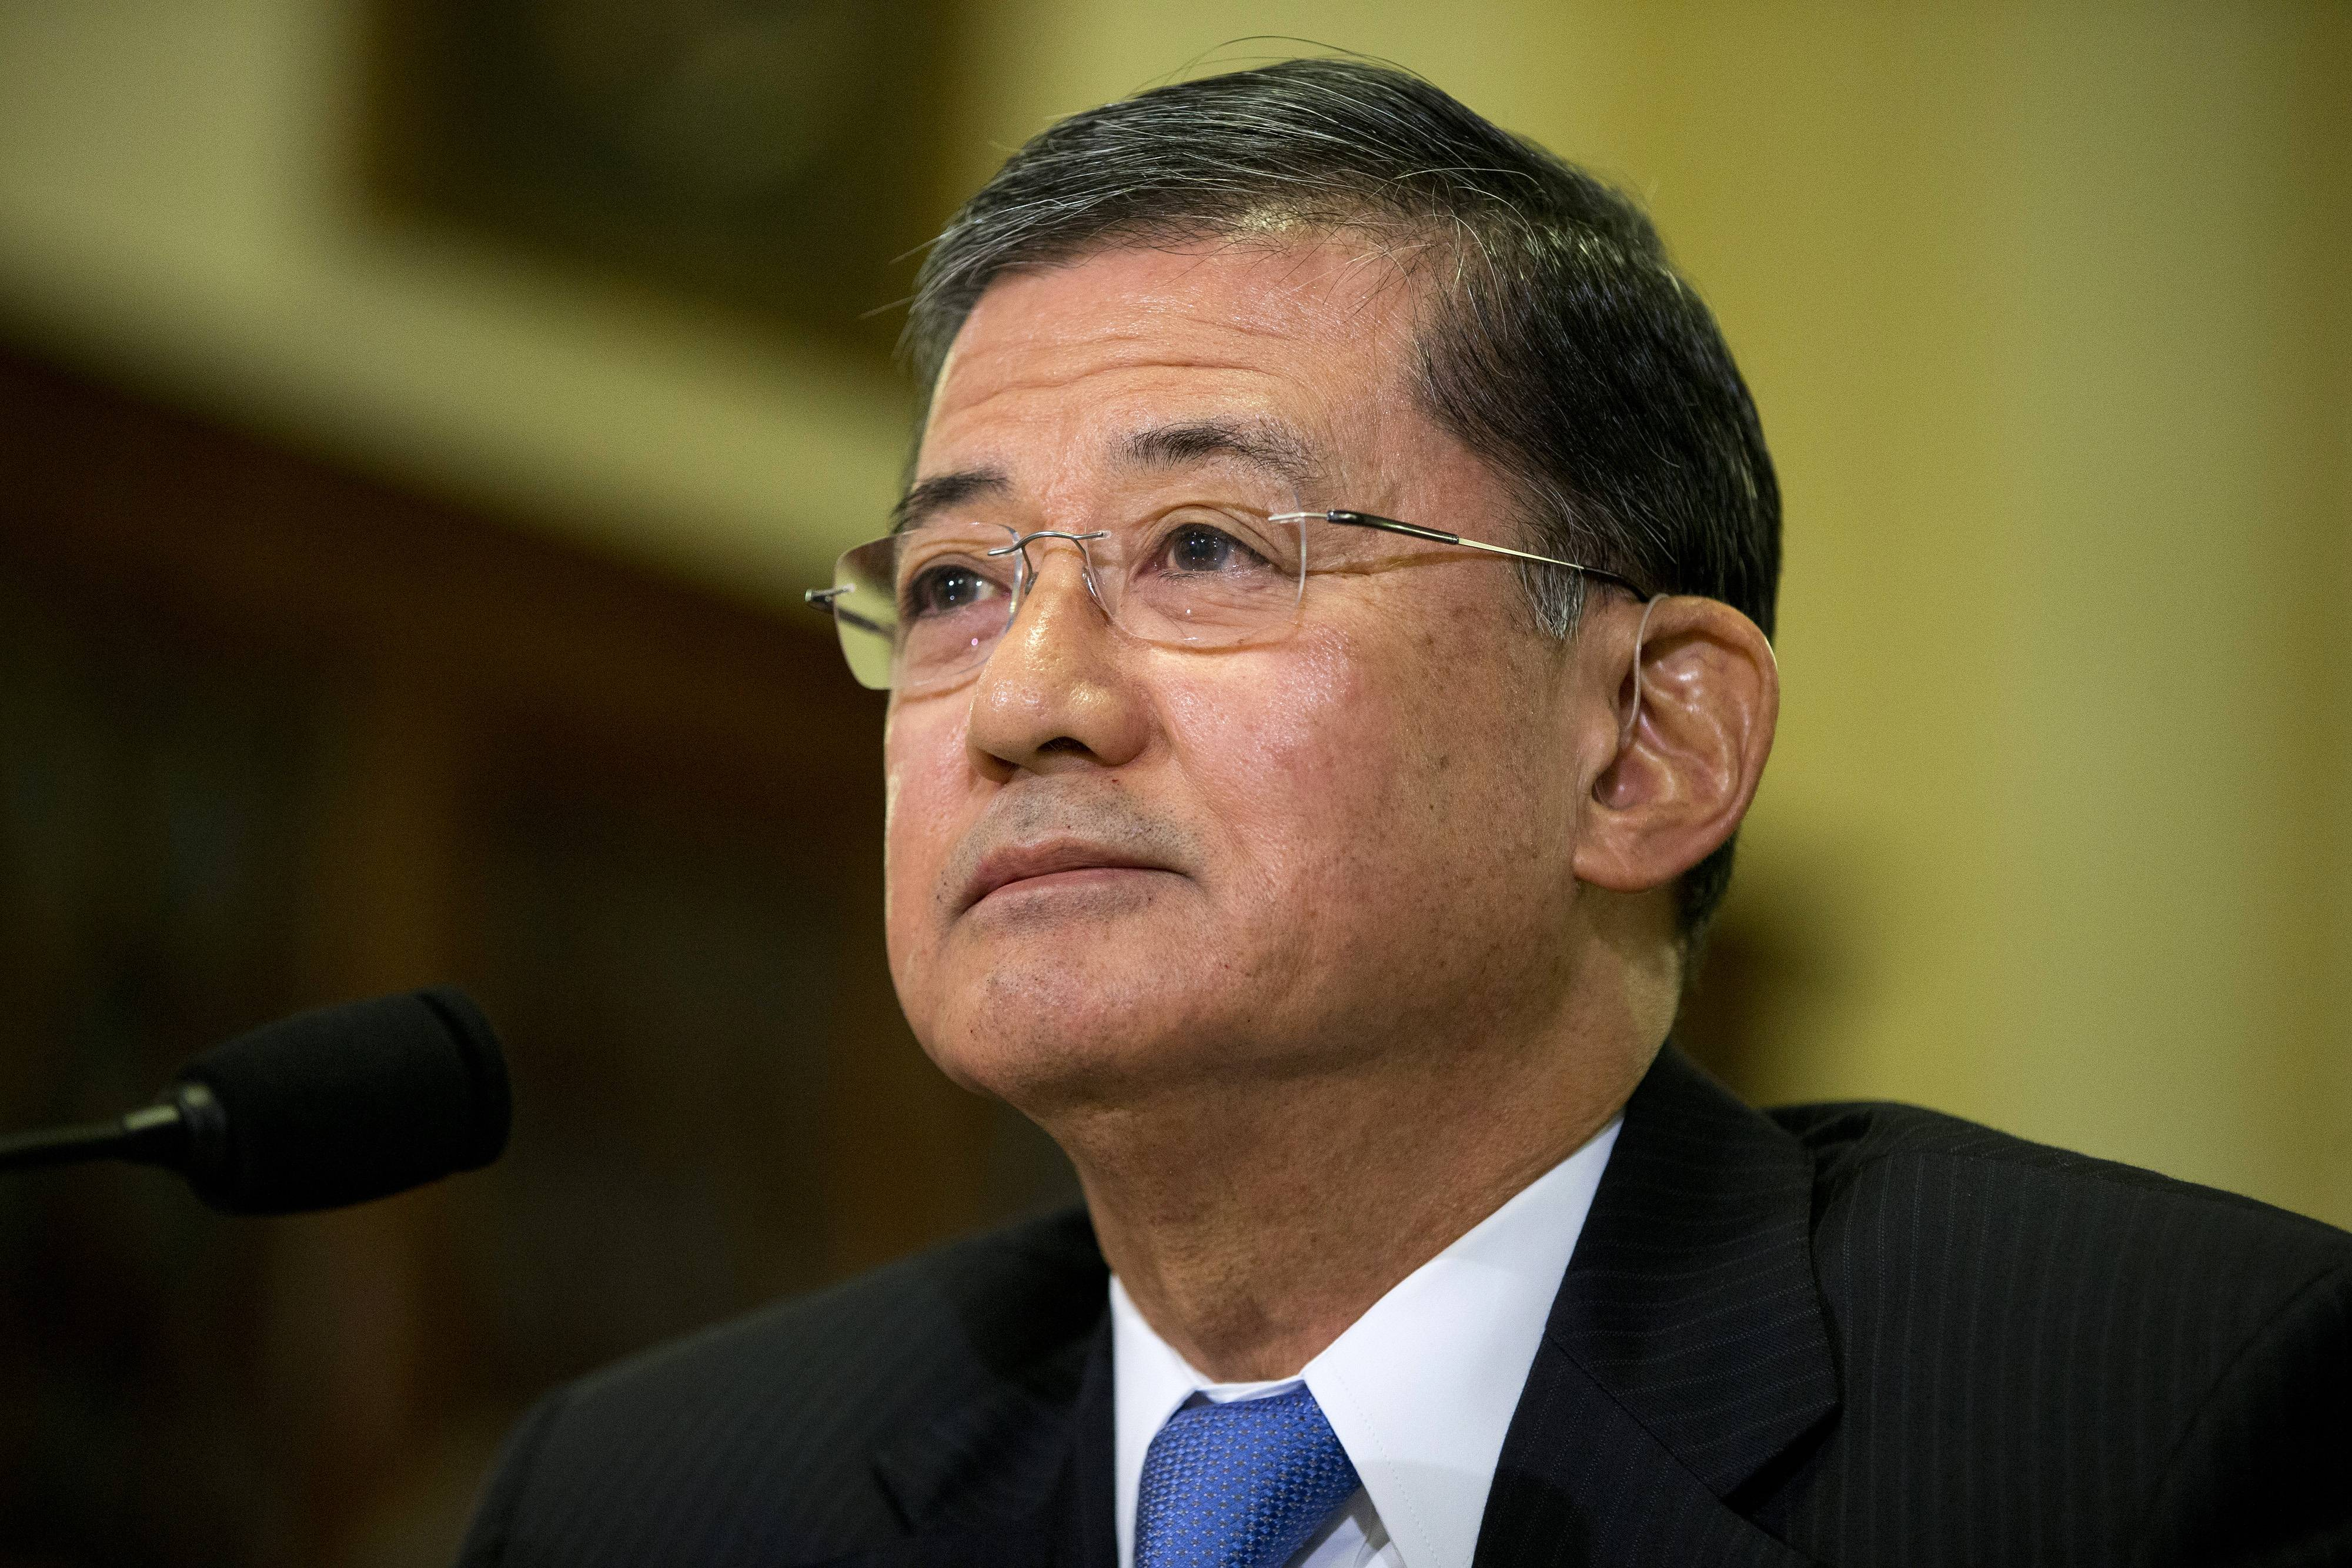 Veterans Affairs Secretary Eric Shinseki will appear before a Senate committee in Washington this week amid allegations of a disturbing cover-up at the veterans hospital in Phoenix.